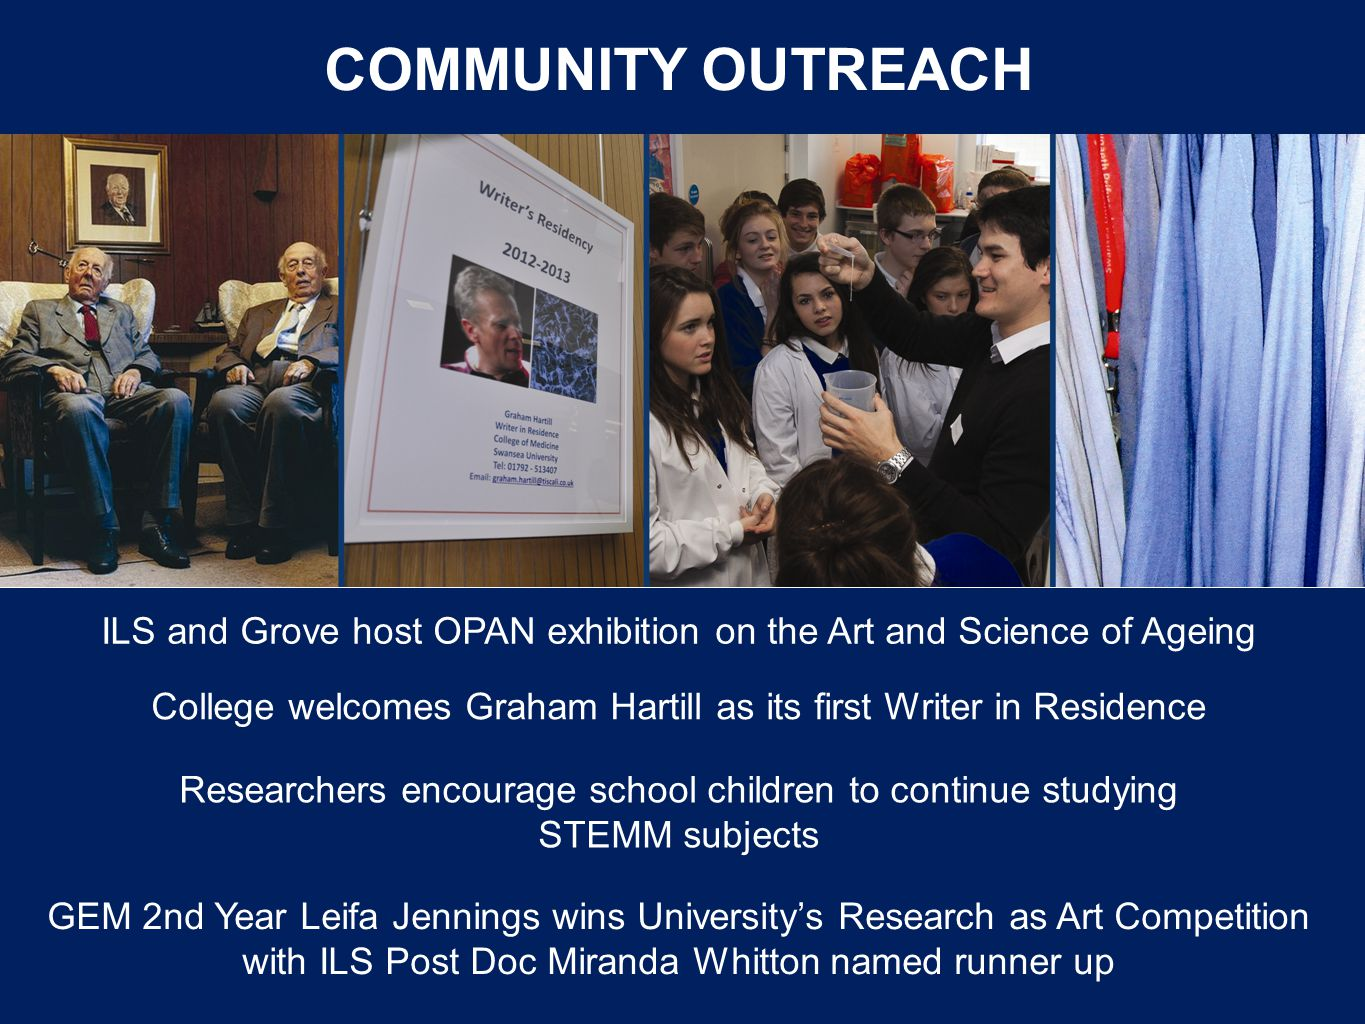 COMMUNITY OUTREACH College welcomes Graham Hartill as its first Writer in Residence ILS and Grove host OPAN exhibition on the Art and Science of Ageing GEM 2nd Year Leifa Jennings wins Universitys Research as Art Competition with ILS Post Doc Miranda Whitton named runner up Researchers encourage school children to continue studying STEMM subjects